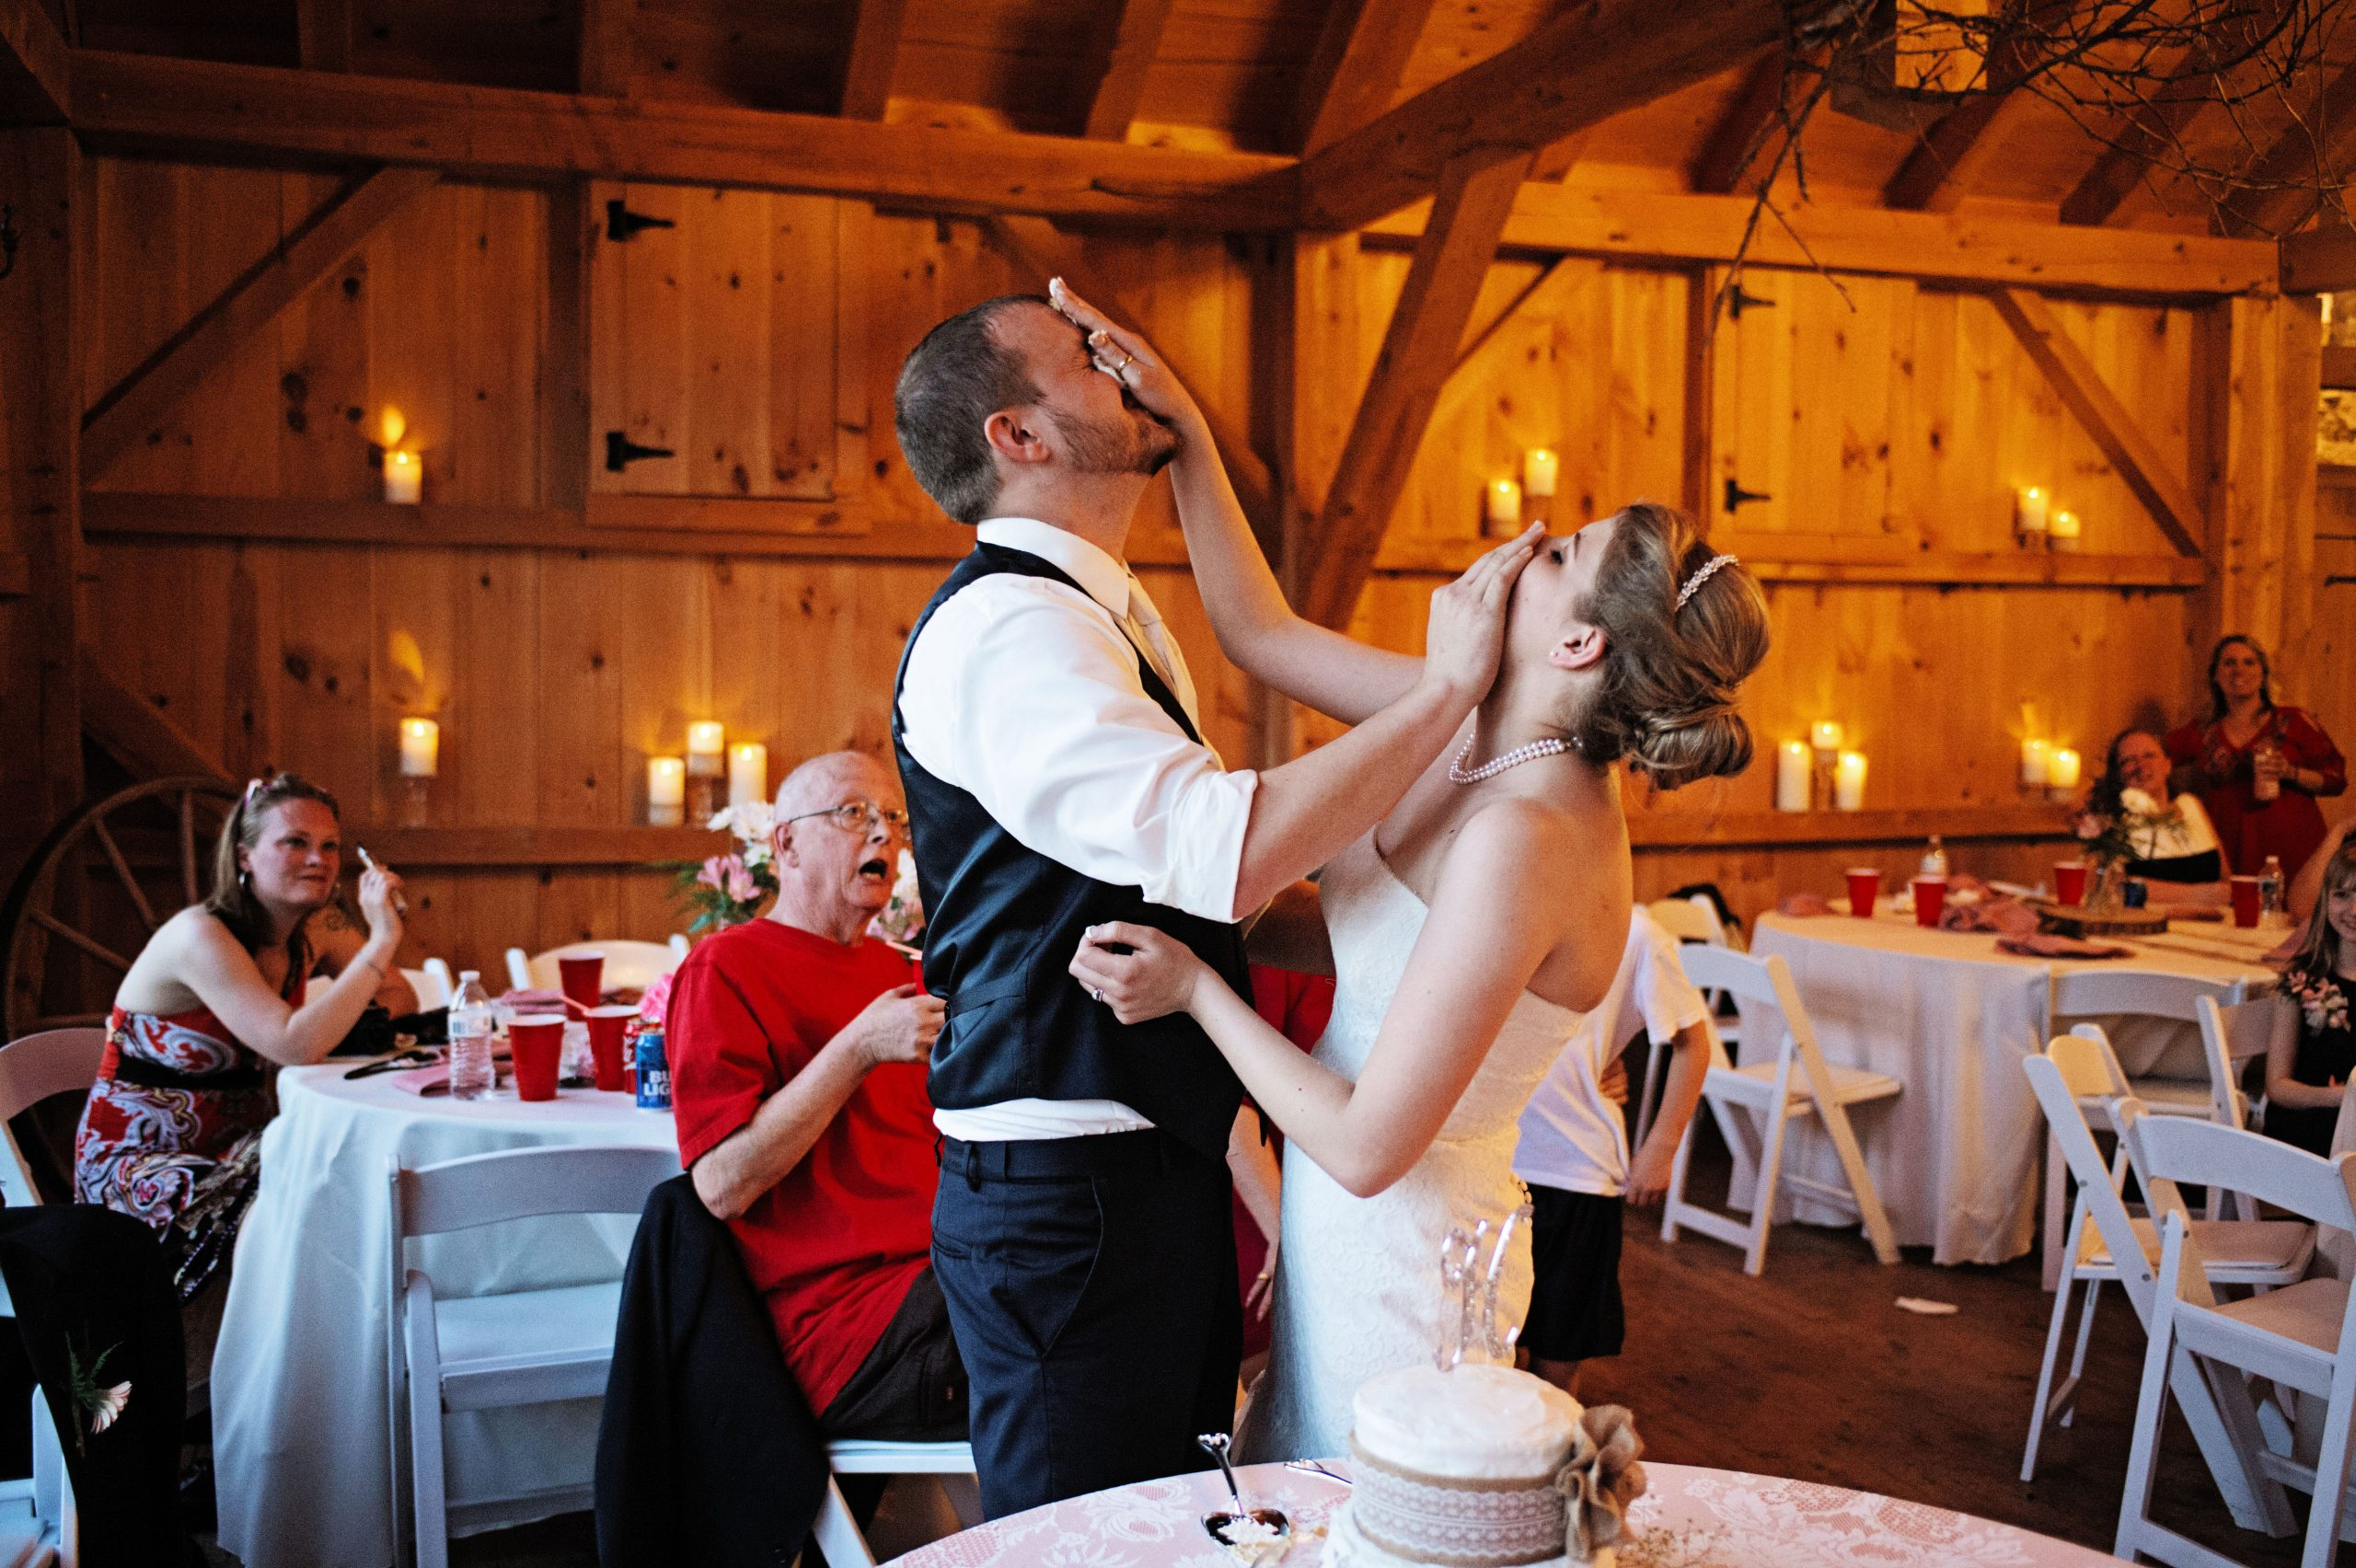 Friends and family look on in awe of the couple, Kady and Ricky, shoving cake in each others' faces at their reception at Lakeview Farms in York, PA. Captured by Lovefusion Photography, the two classically claim each other with cake. Featured on Dream Weddings.